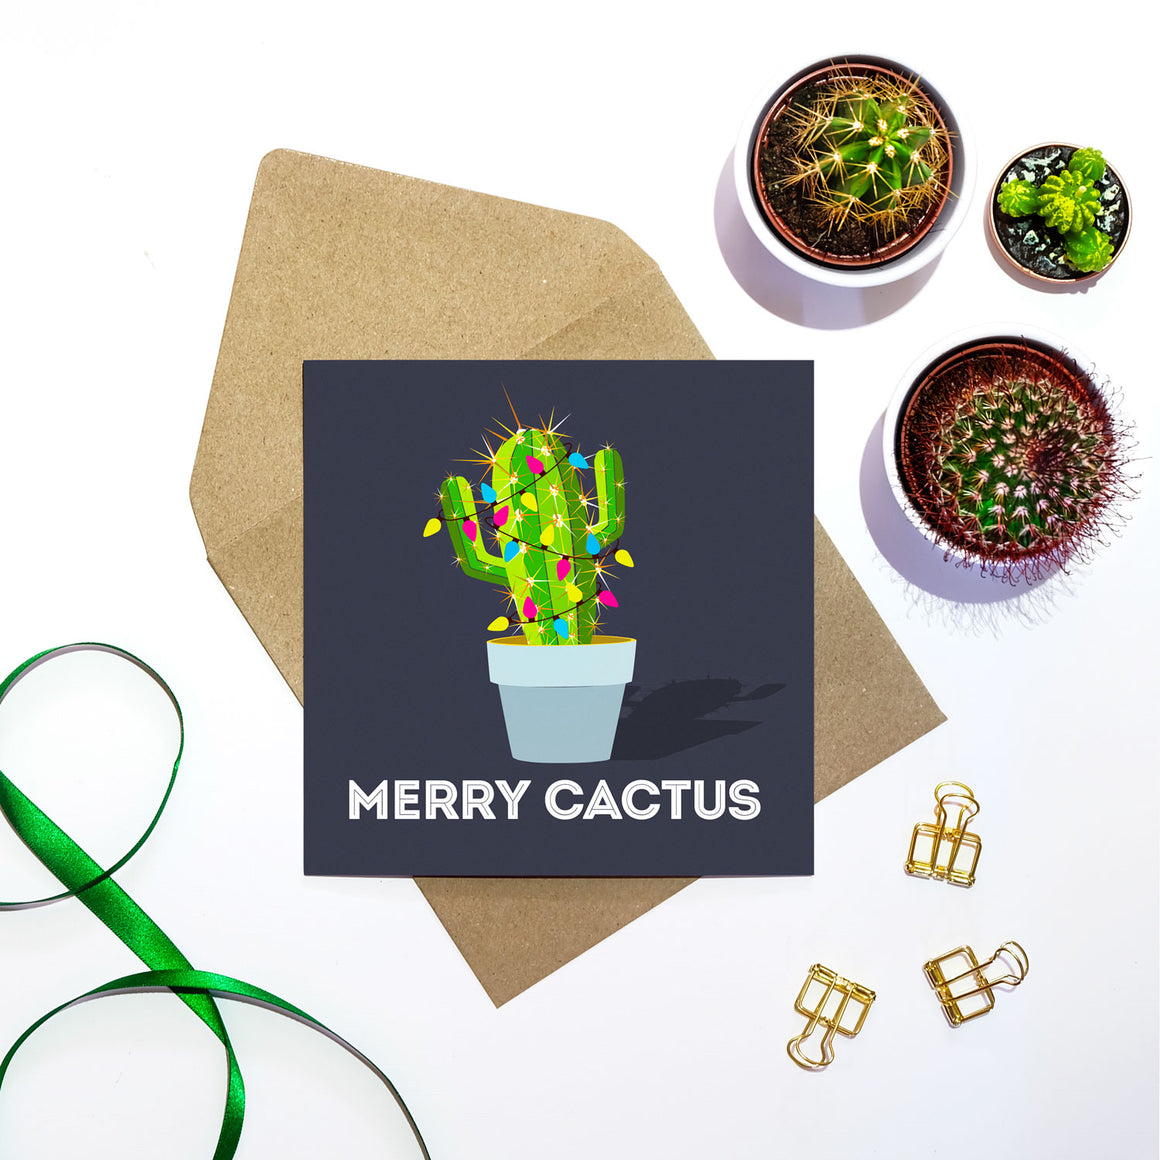 Merry Cactus Christmas Card